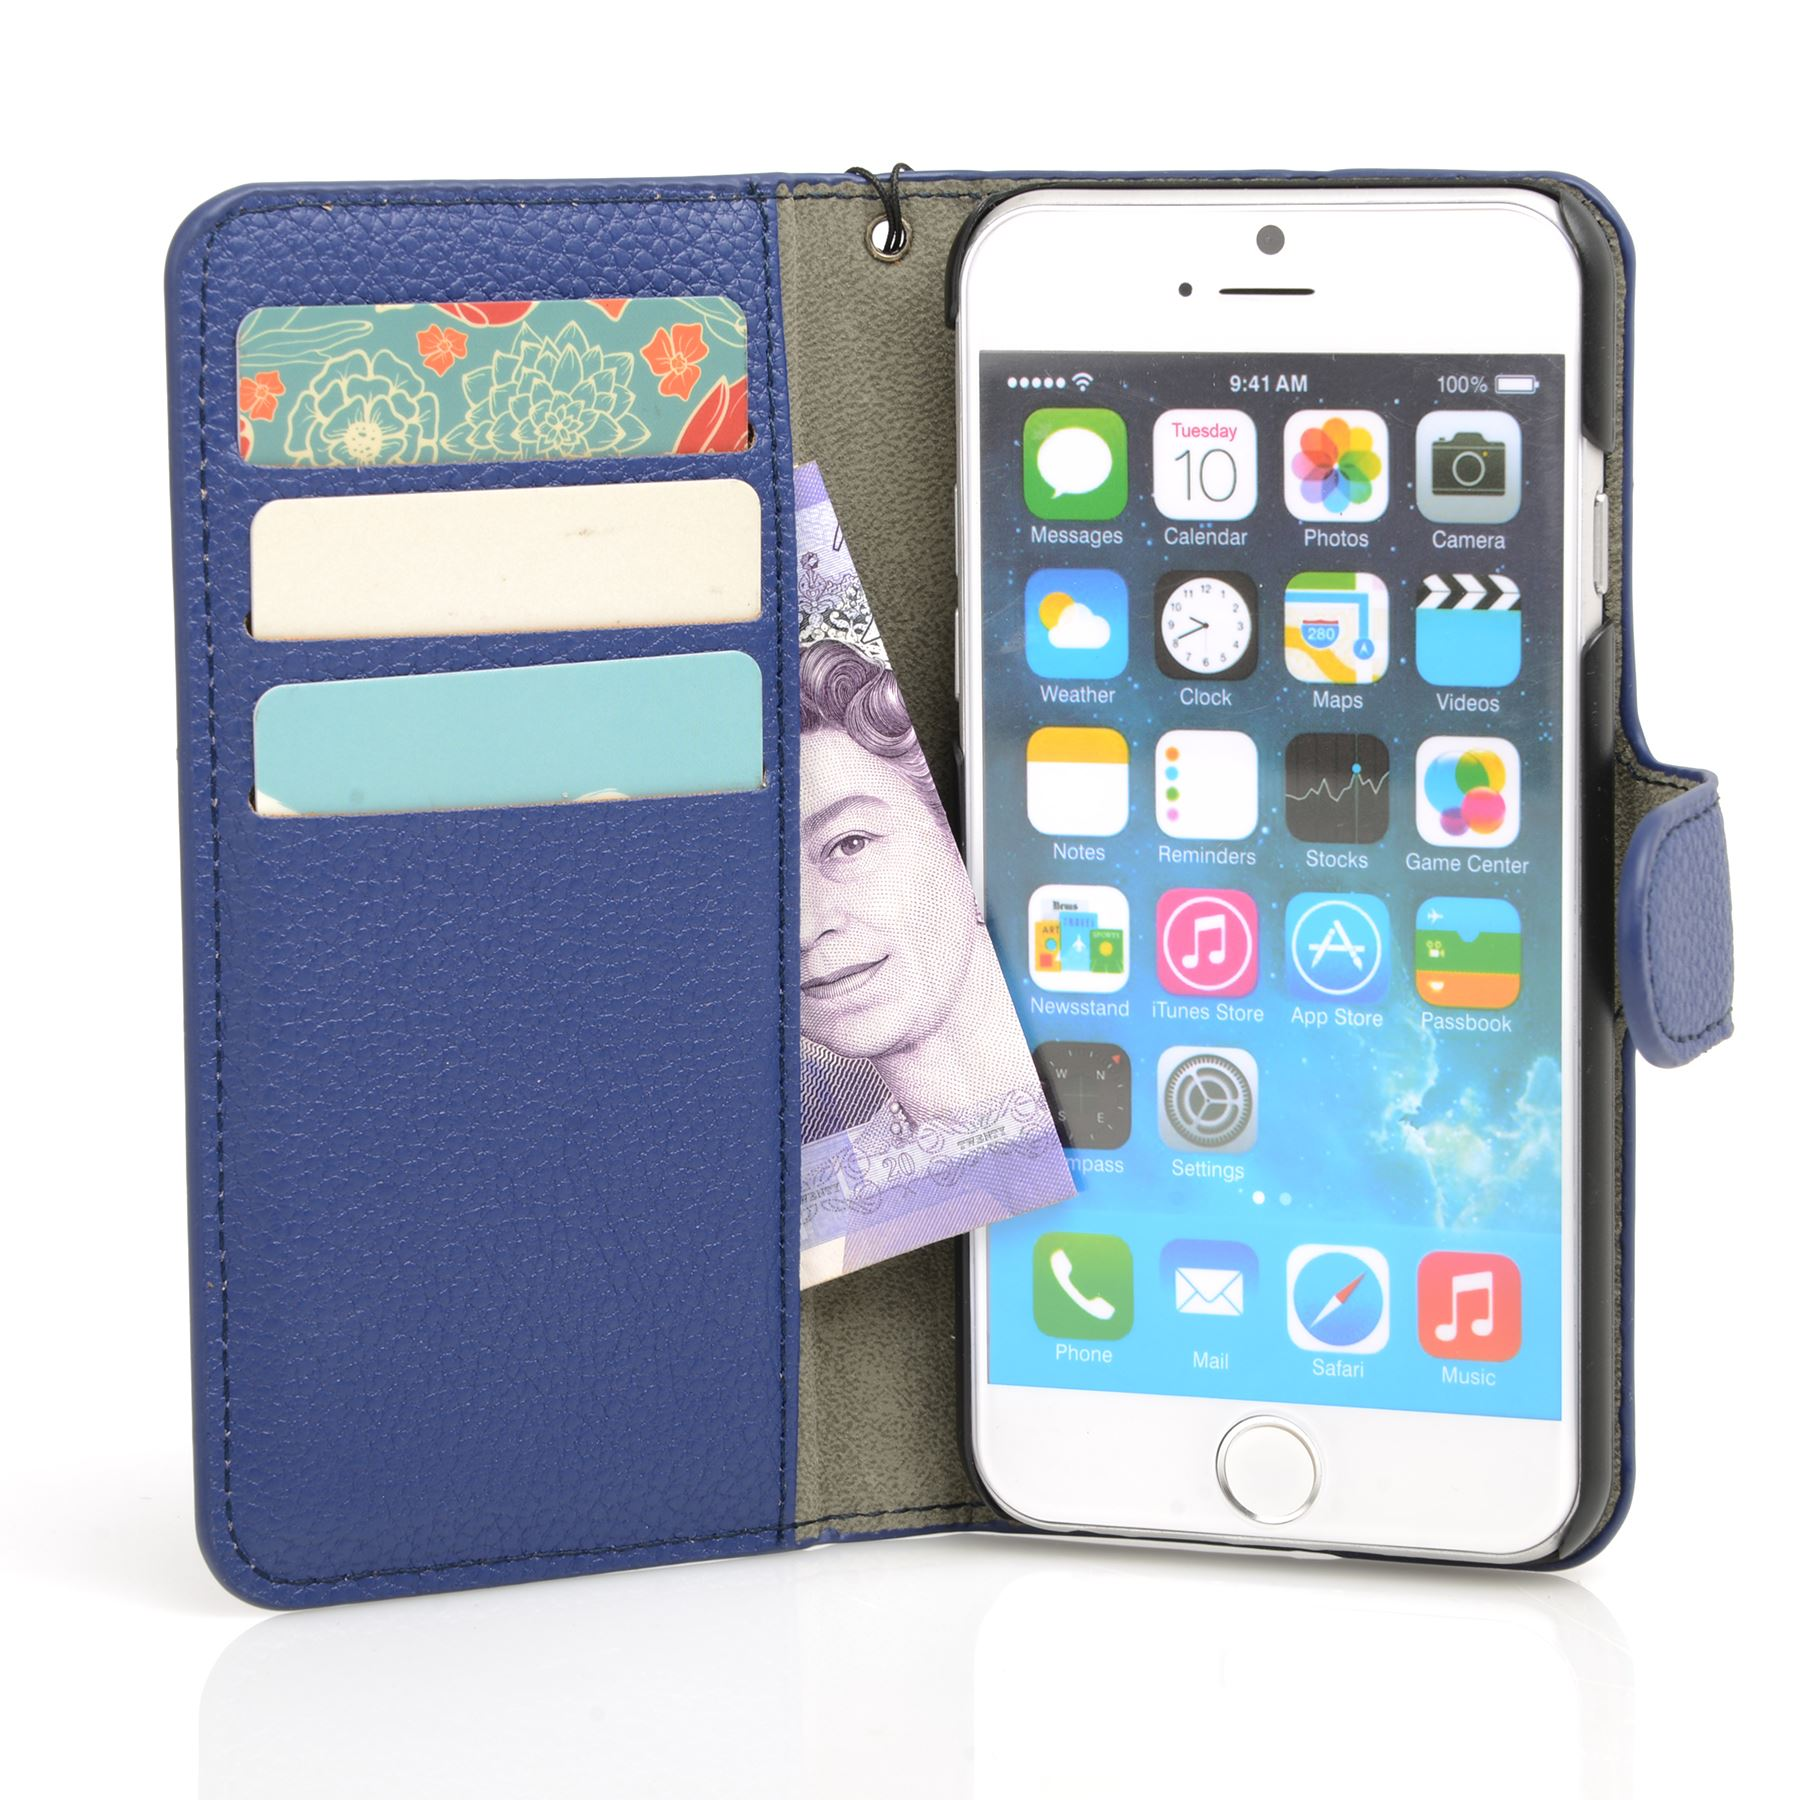 thumbnail 16 - For Apple iPhone 6s 6 Case Premium Textured Leather Wallet Madcase Cover